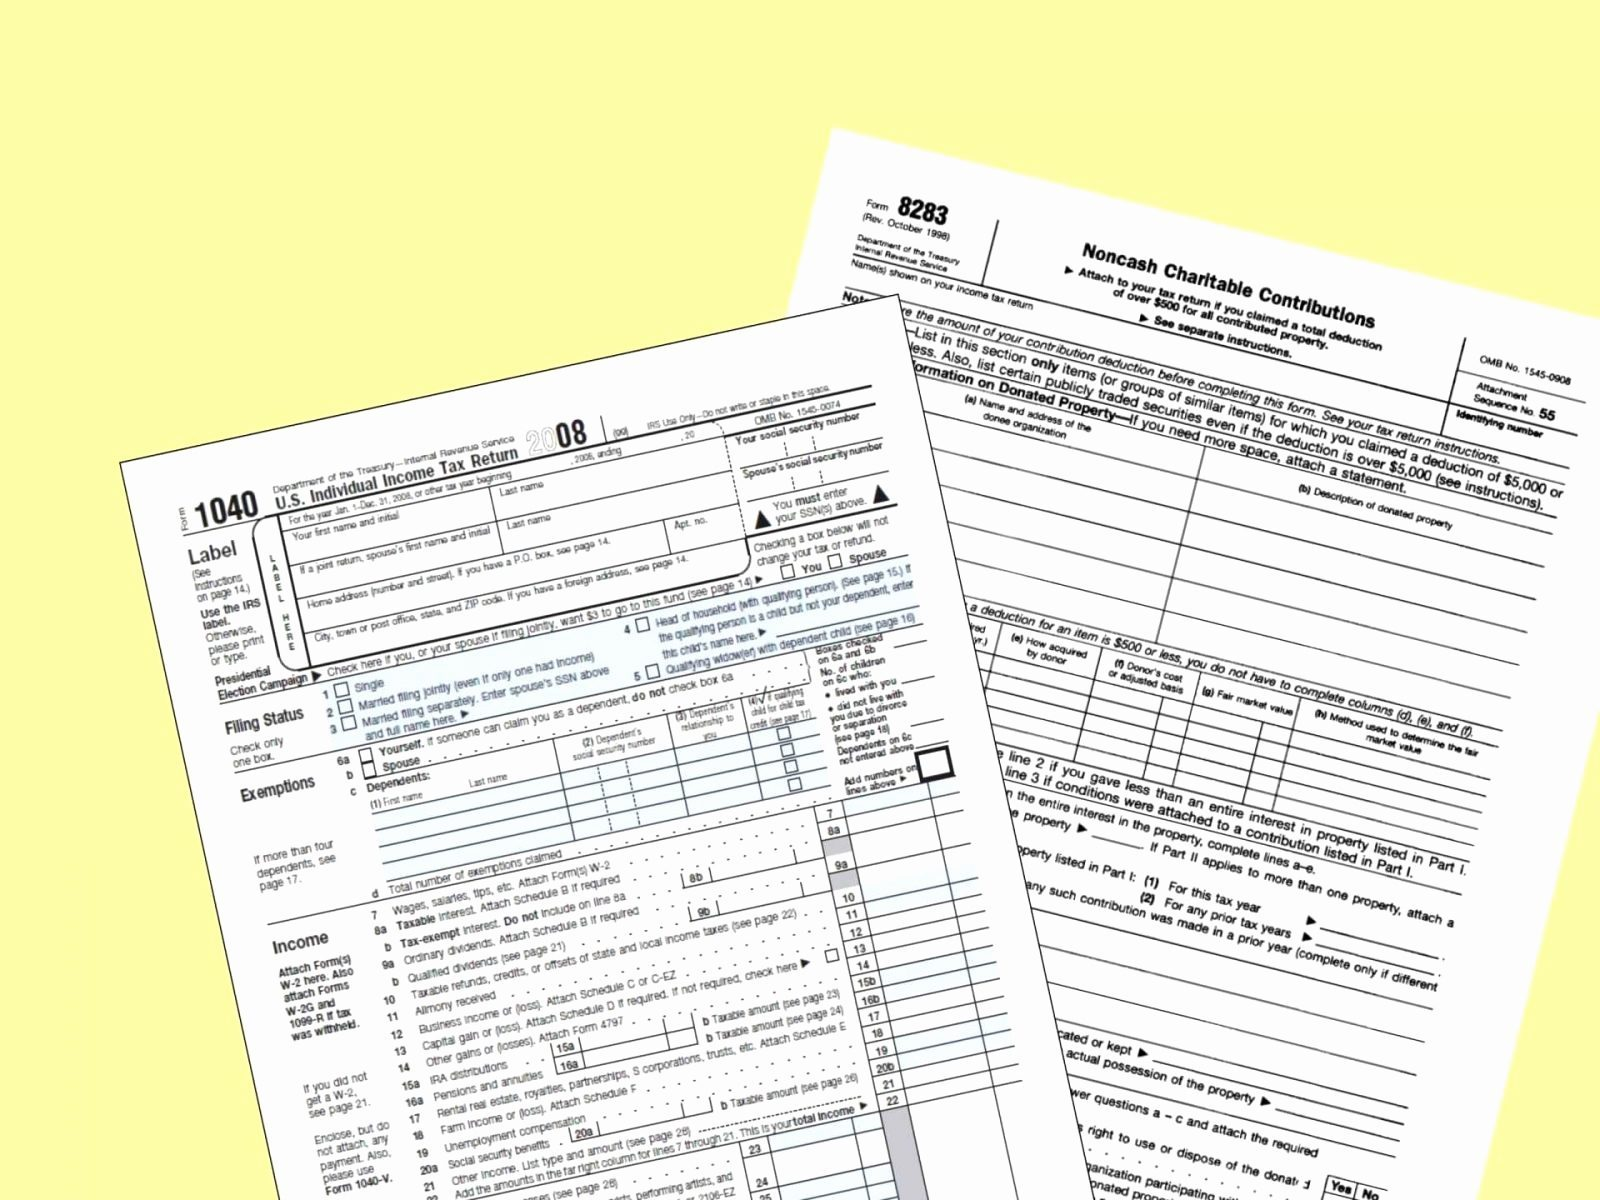 Payroll Deduction Form For Lost Equipment